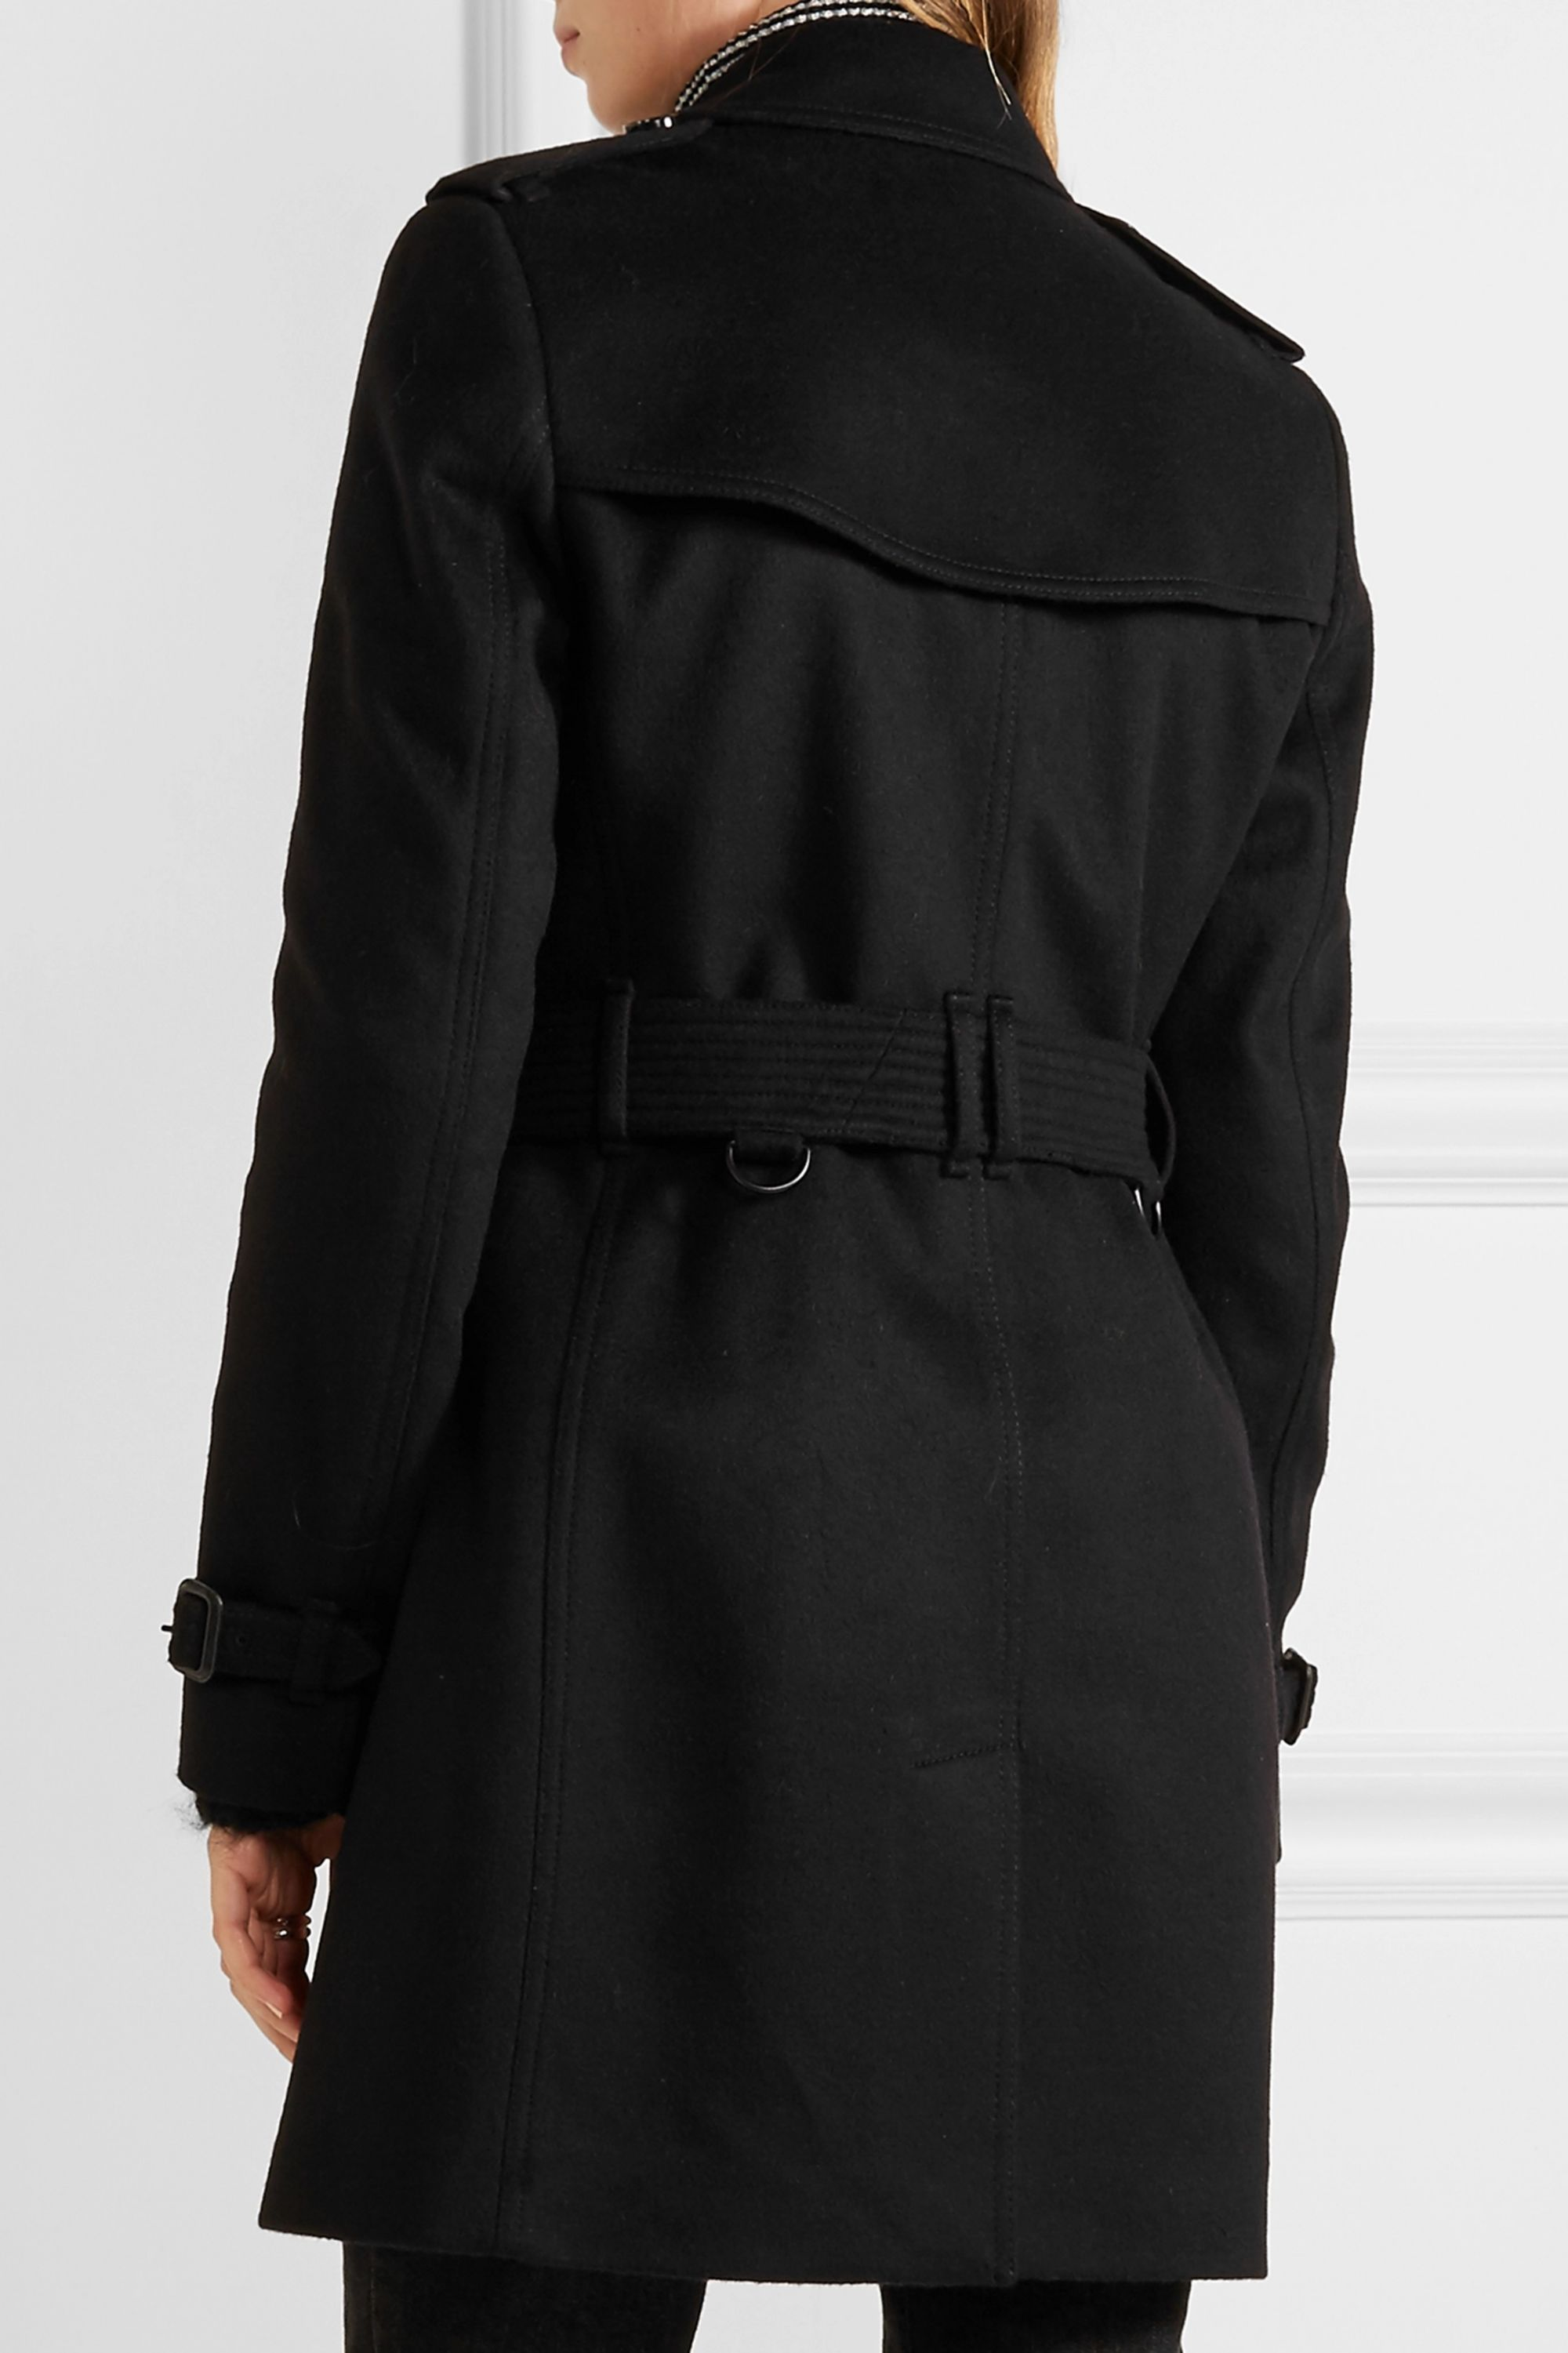 Burberry The Kensington Mid wool and cashmere-blend trench coat